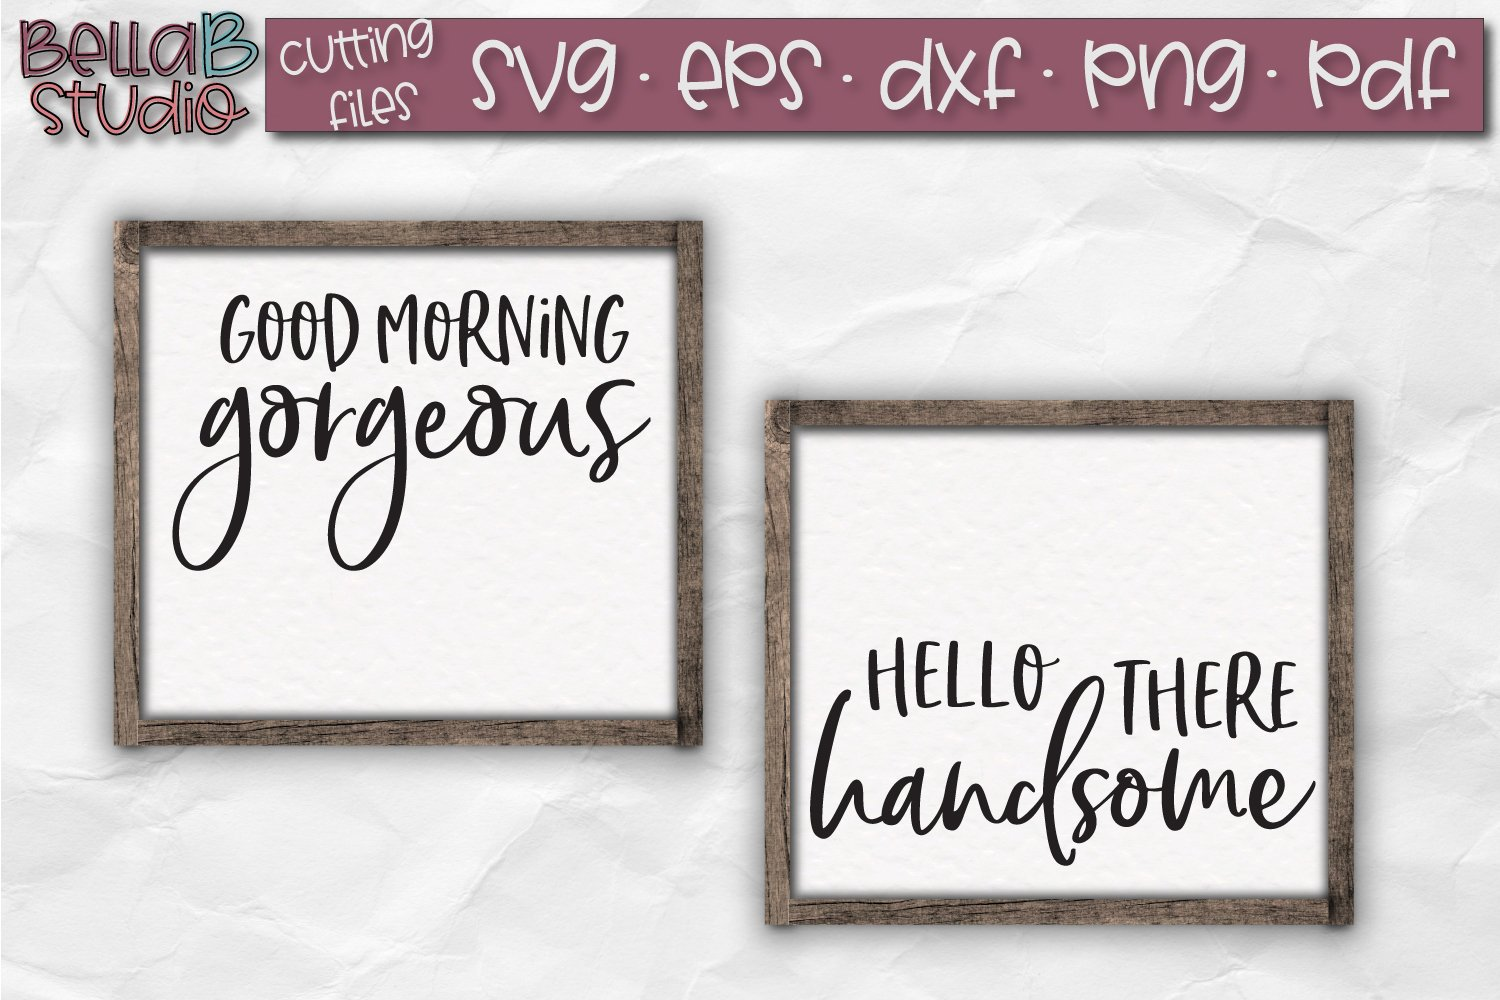 Good Morning Gorgeous Hello There Handsome Svg File 160548 Svgs Design Bundles